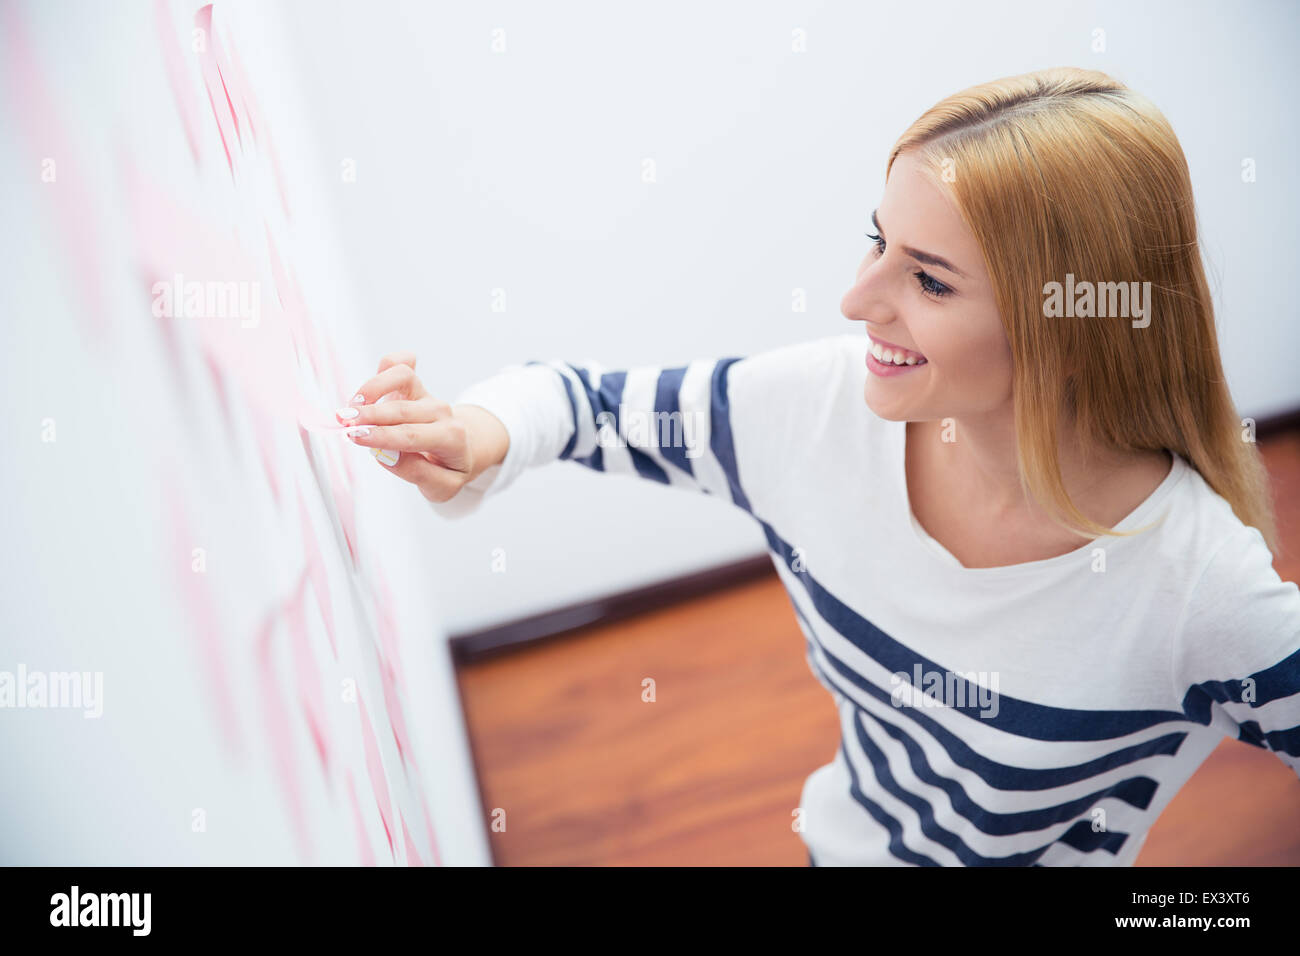 Happy casual girl looking at stickers on wall in office - Stock Image